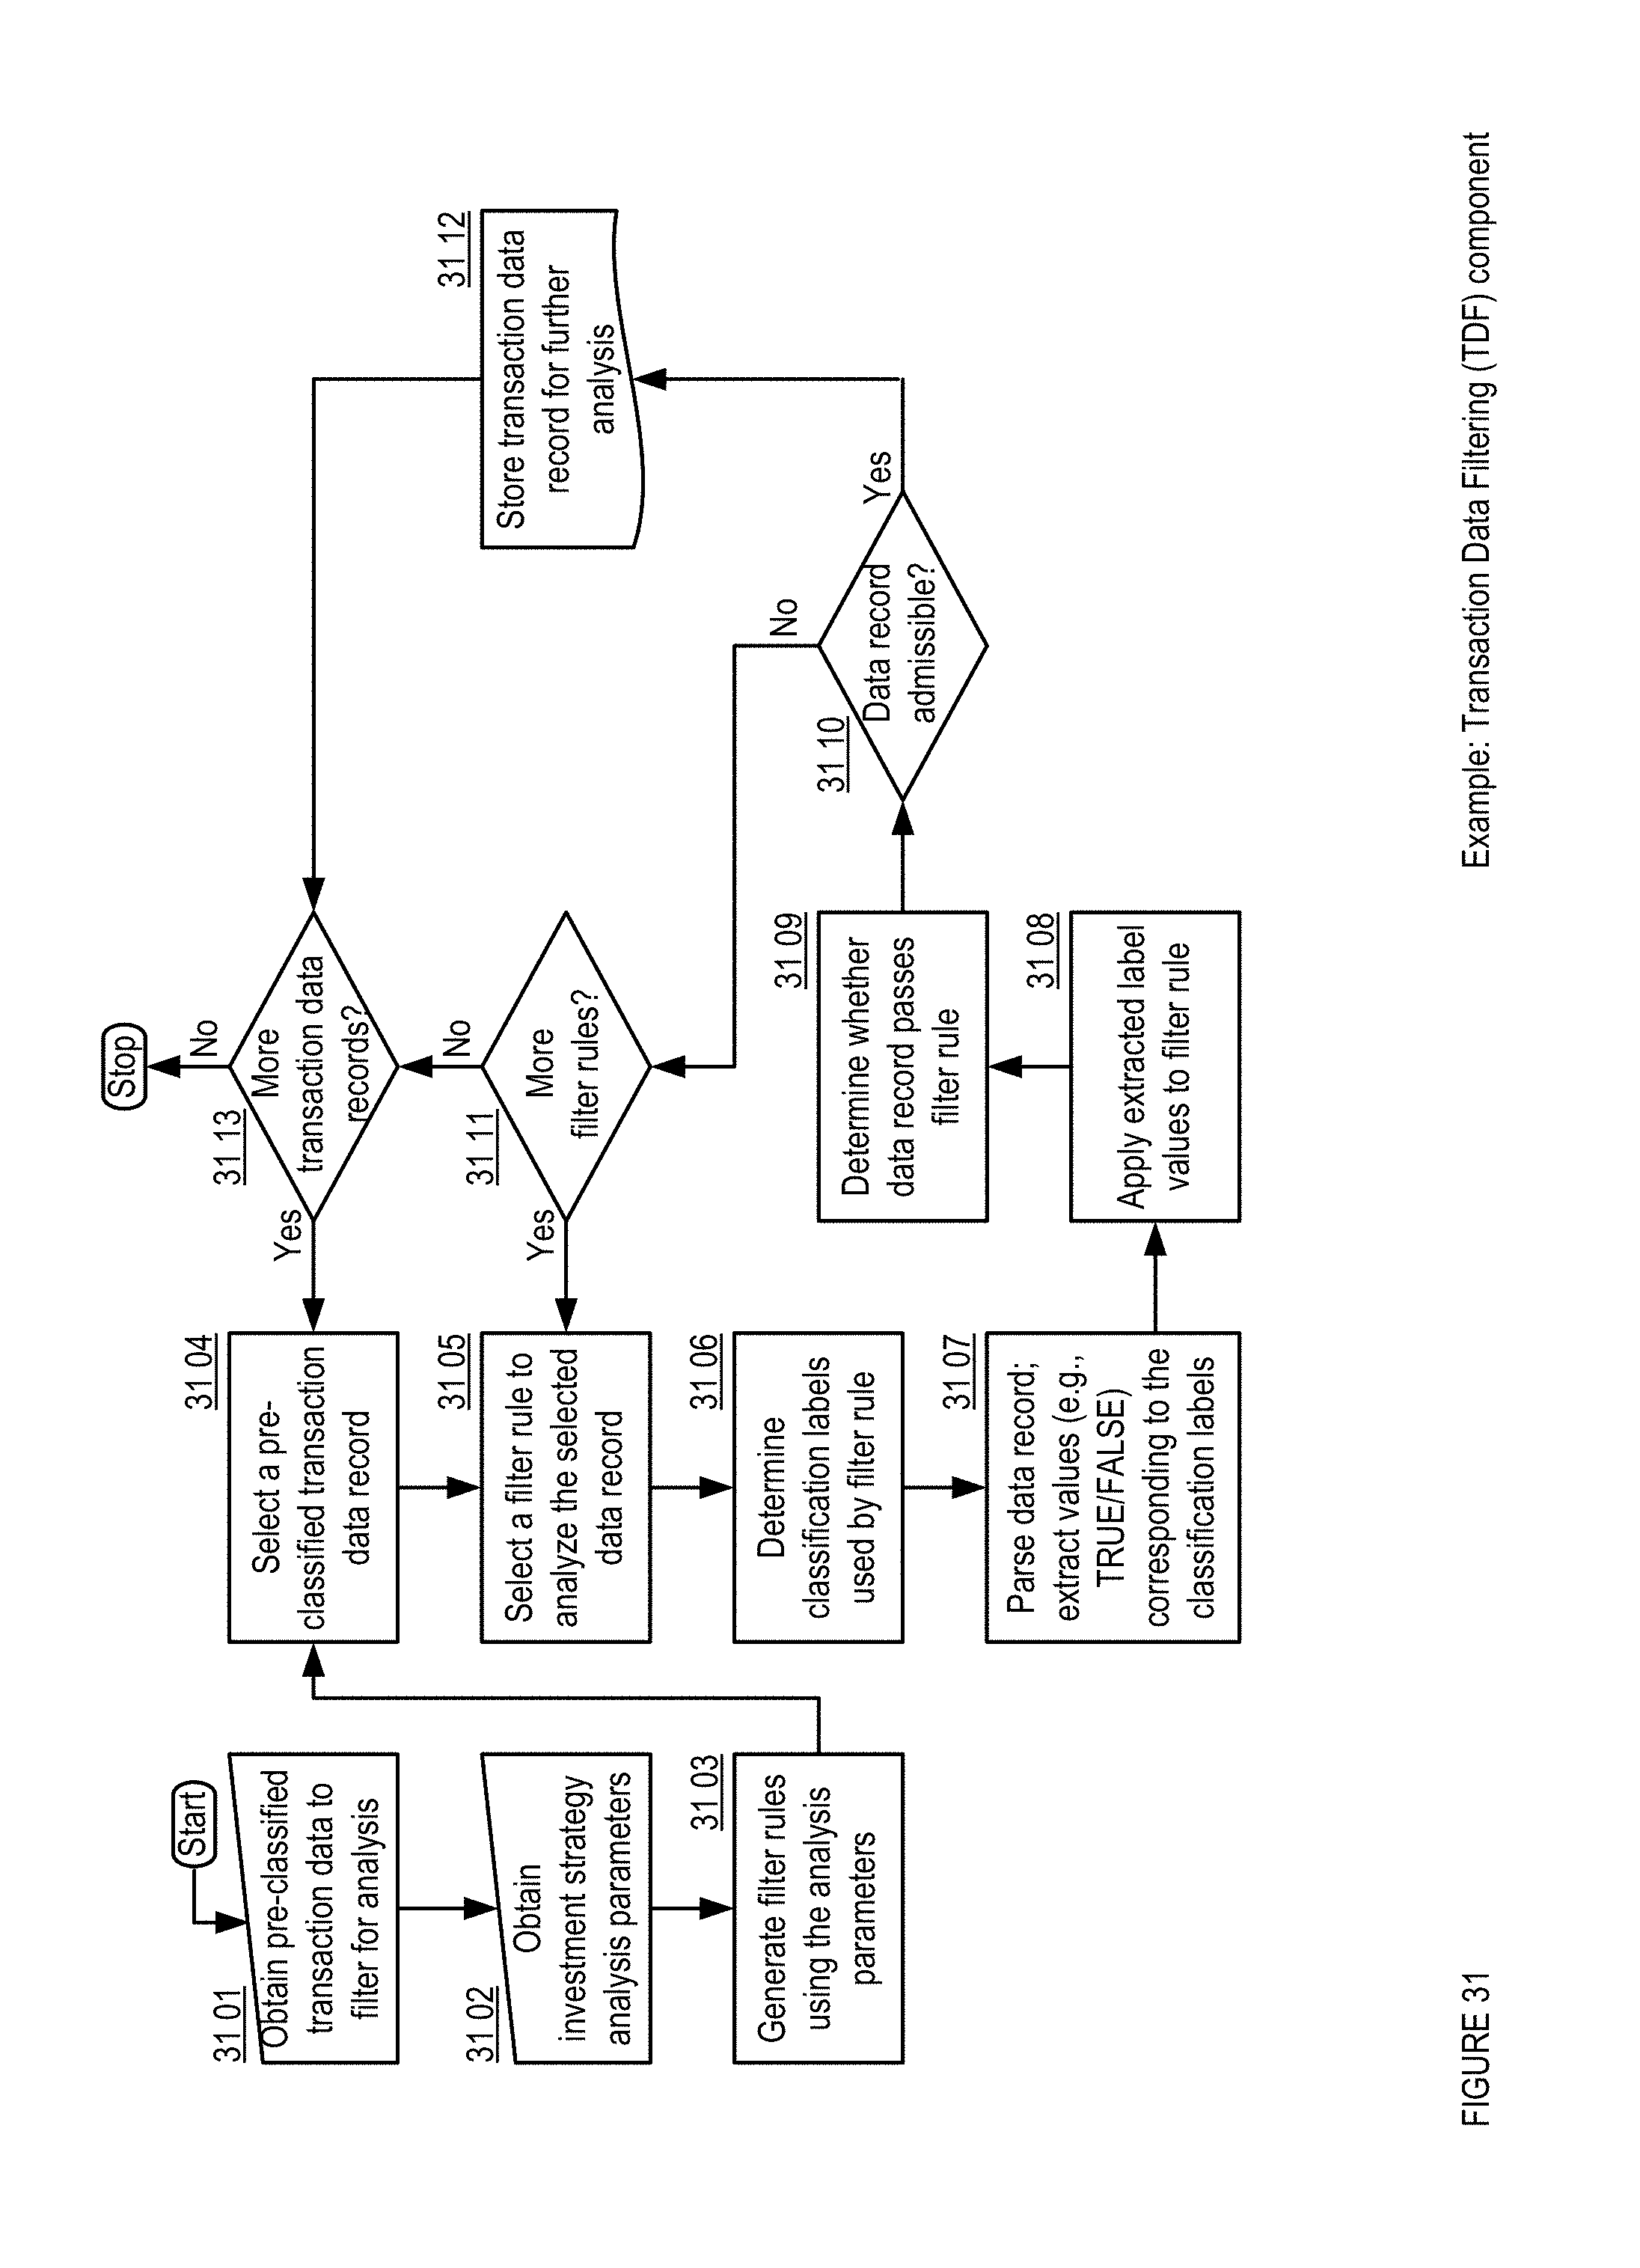 Patent Us 9830328 B2 Diagram Moreover Dip Switch Settings In Addition Cat 5 Crossover Cable Images